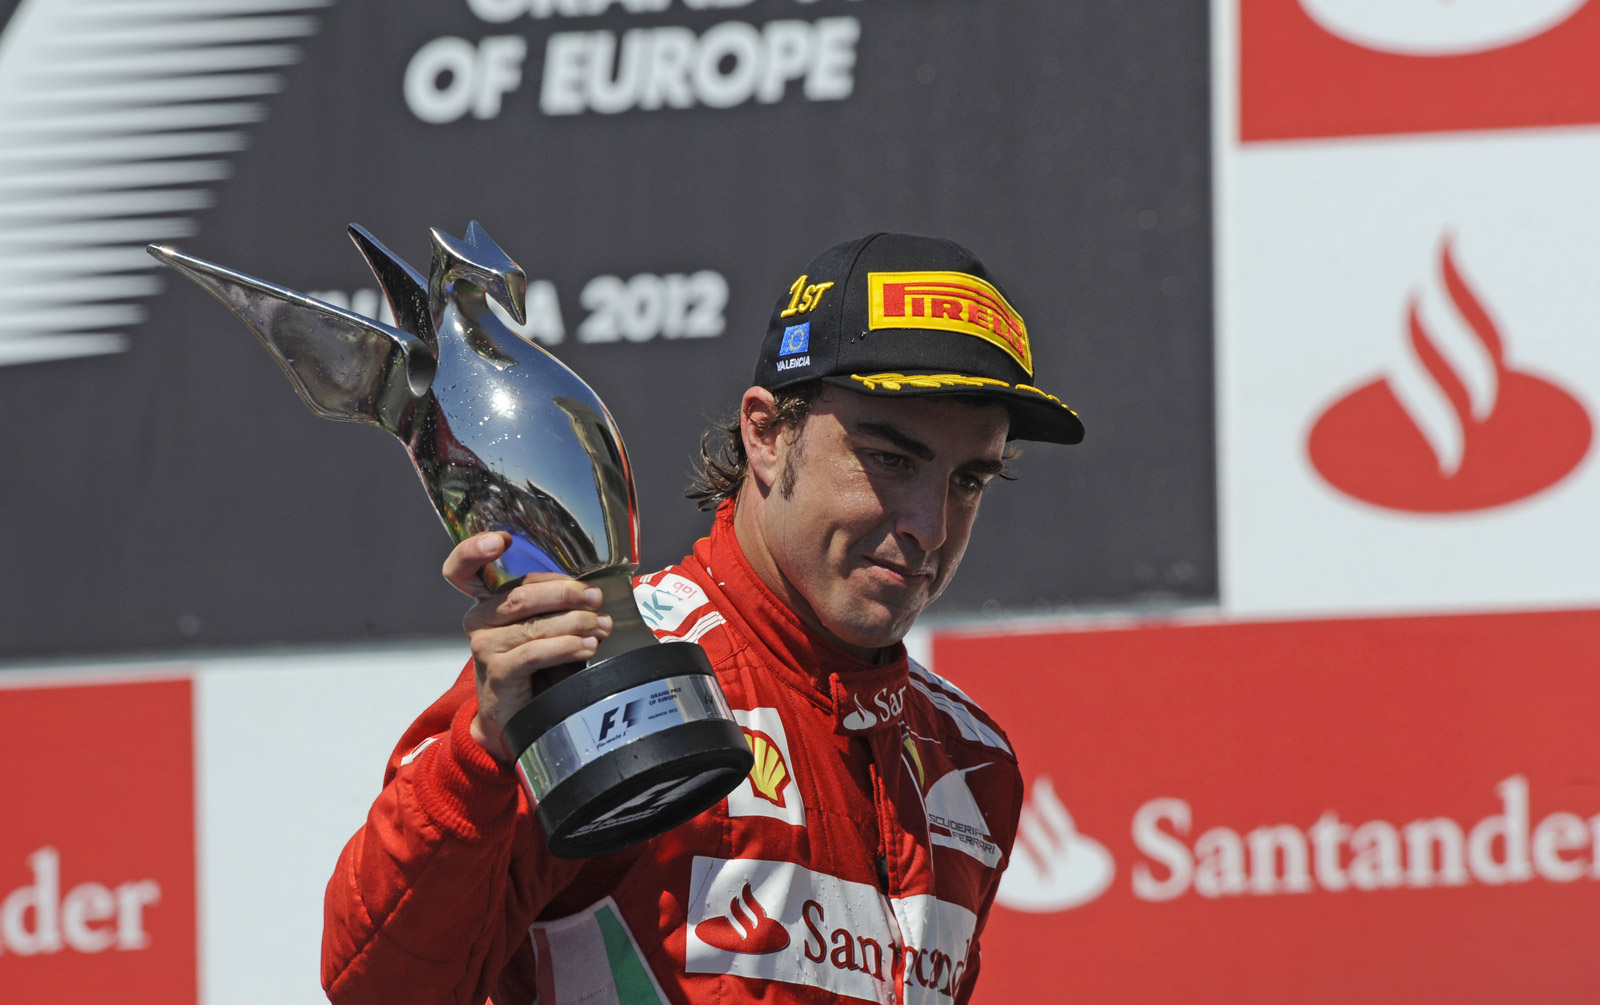 Fernando Alonso F1 Grand Prix Fernando Alonso Wins Formula 1 European Grand Prix In Spain